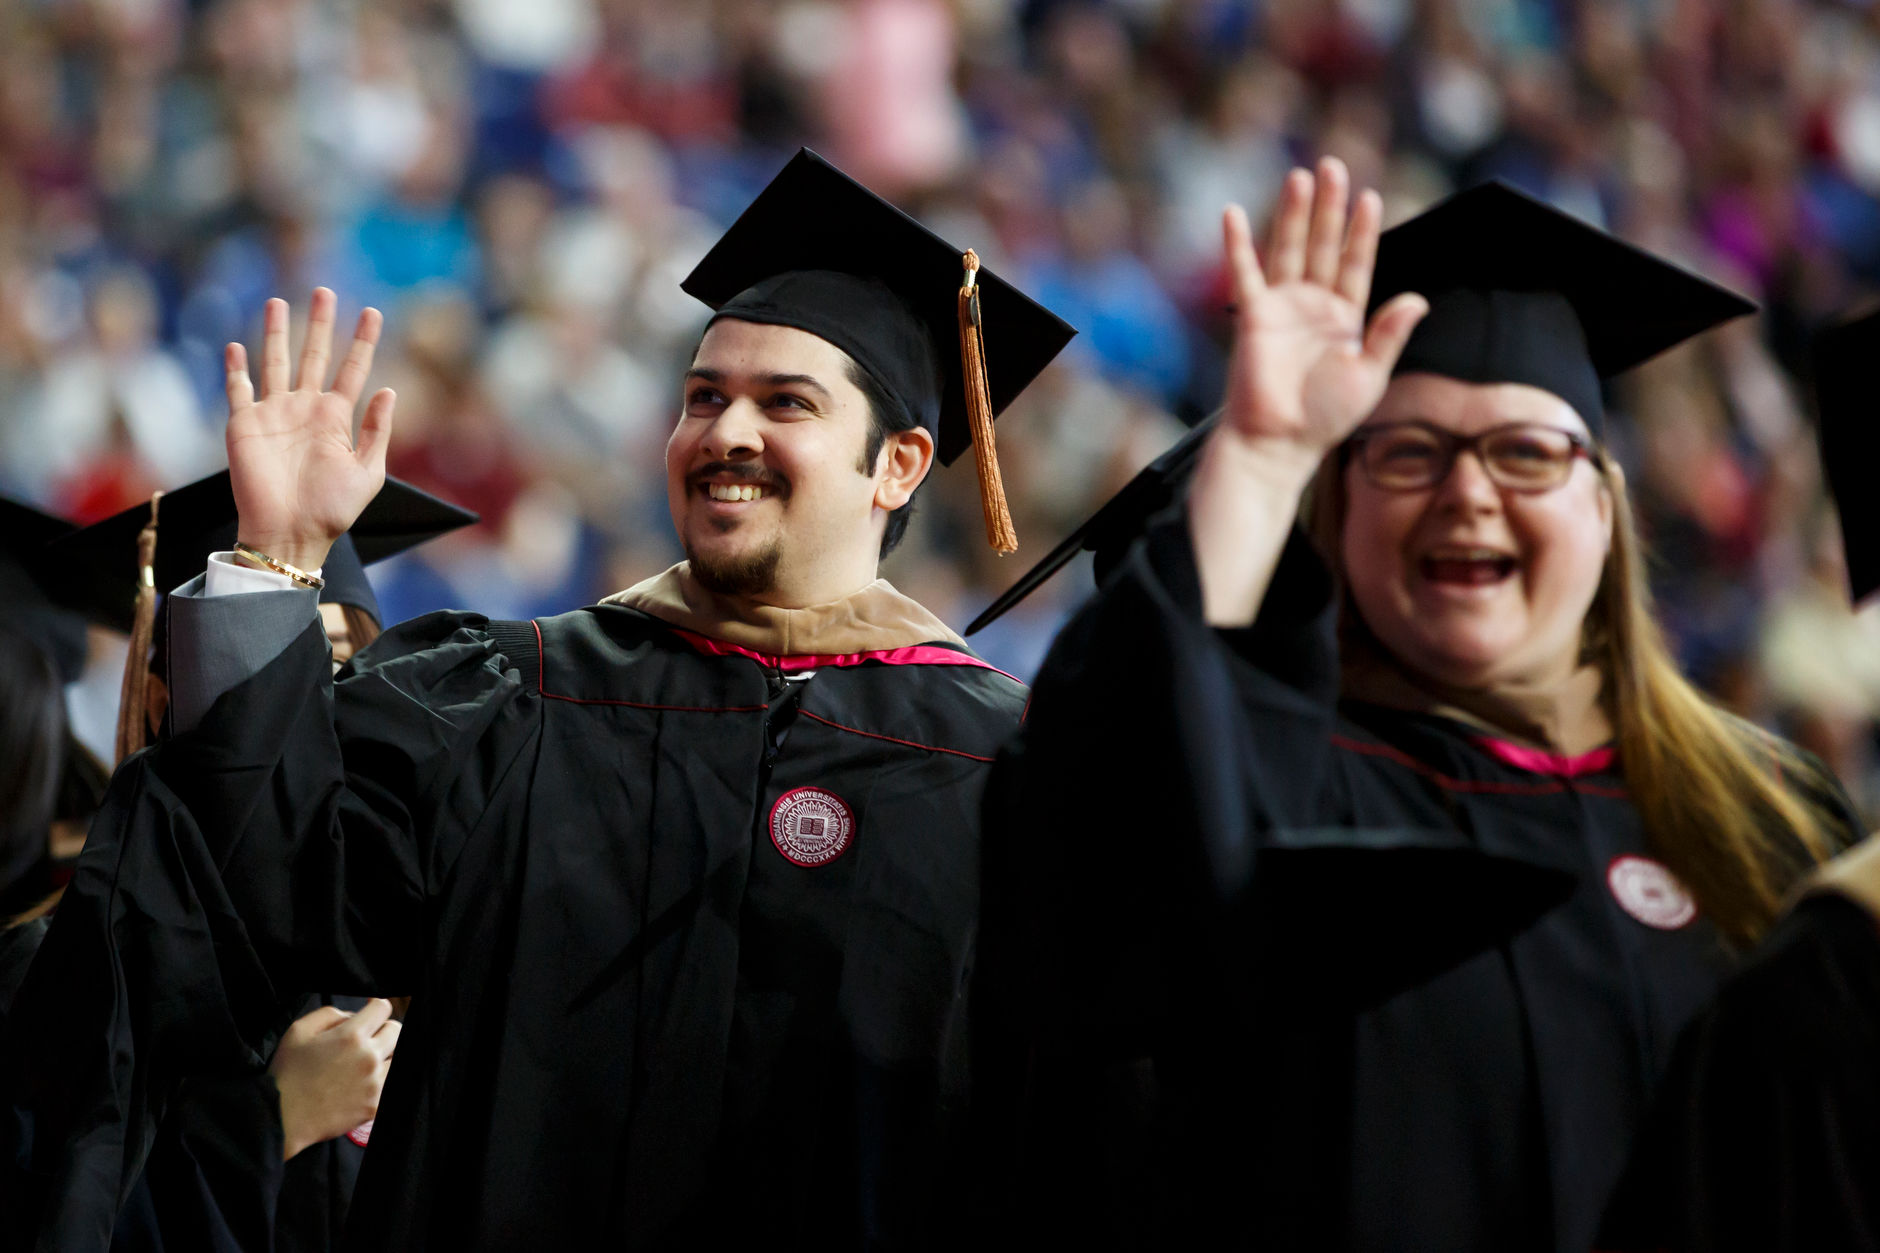 Graduates wave to friends in the audience during the IUPUI Commencement at Lucas Oil Stadium on Saturday, May 11, 2019. (James Brosher/Indiana University)